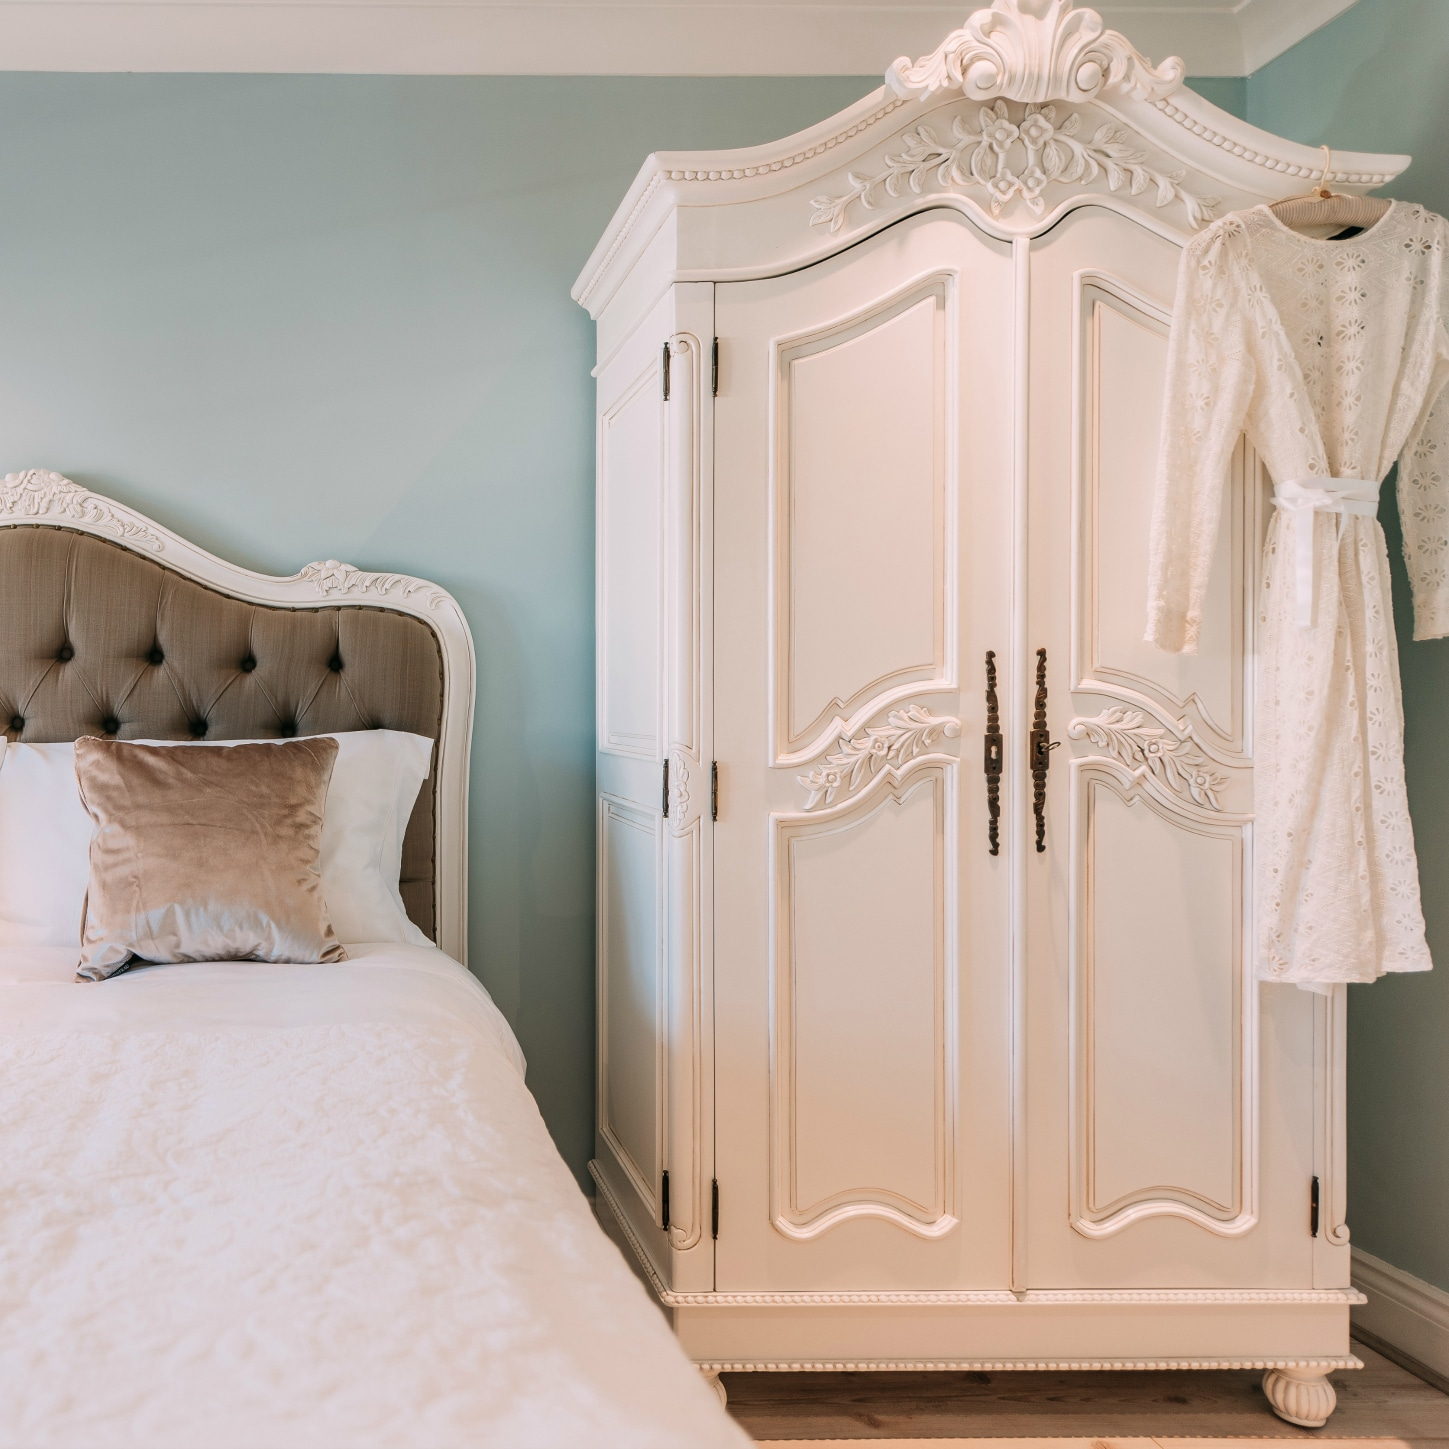 French White Hand Carved Double Armoire Wardrobe   La Maison Chic Furniture  Company Online Good Looking